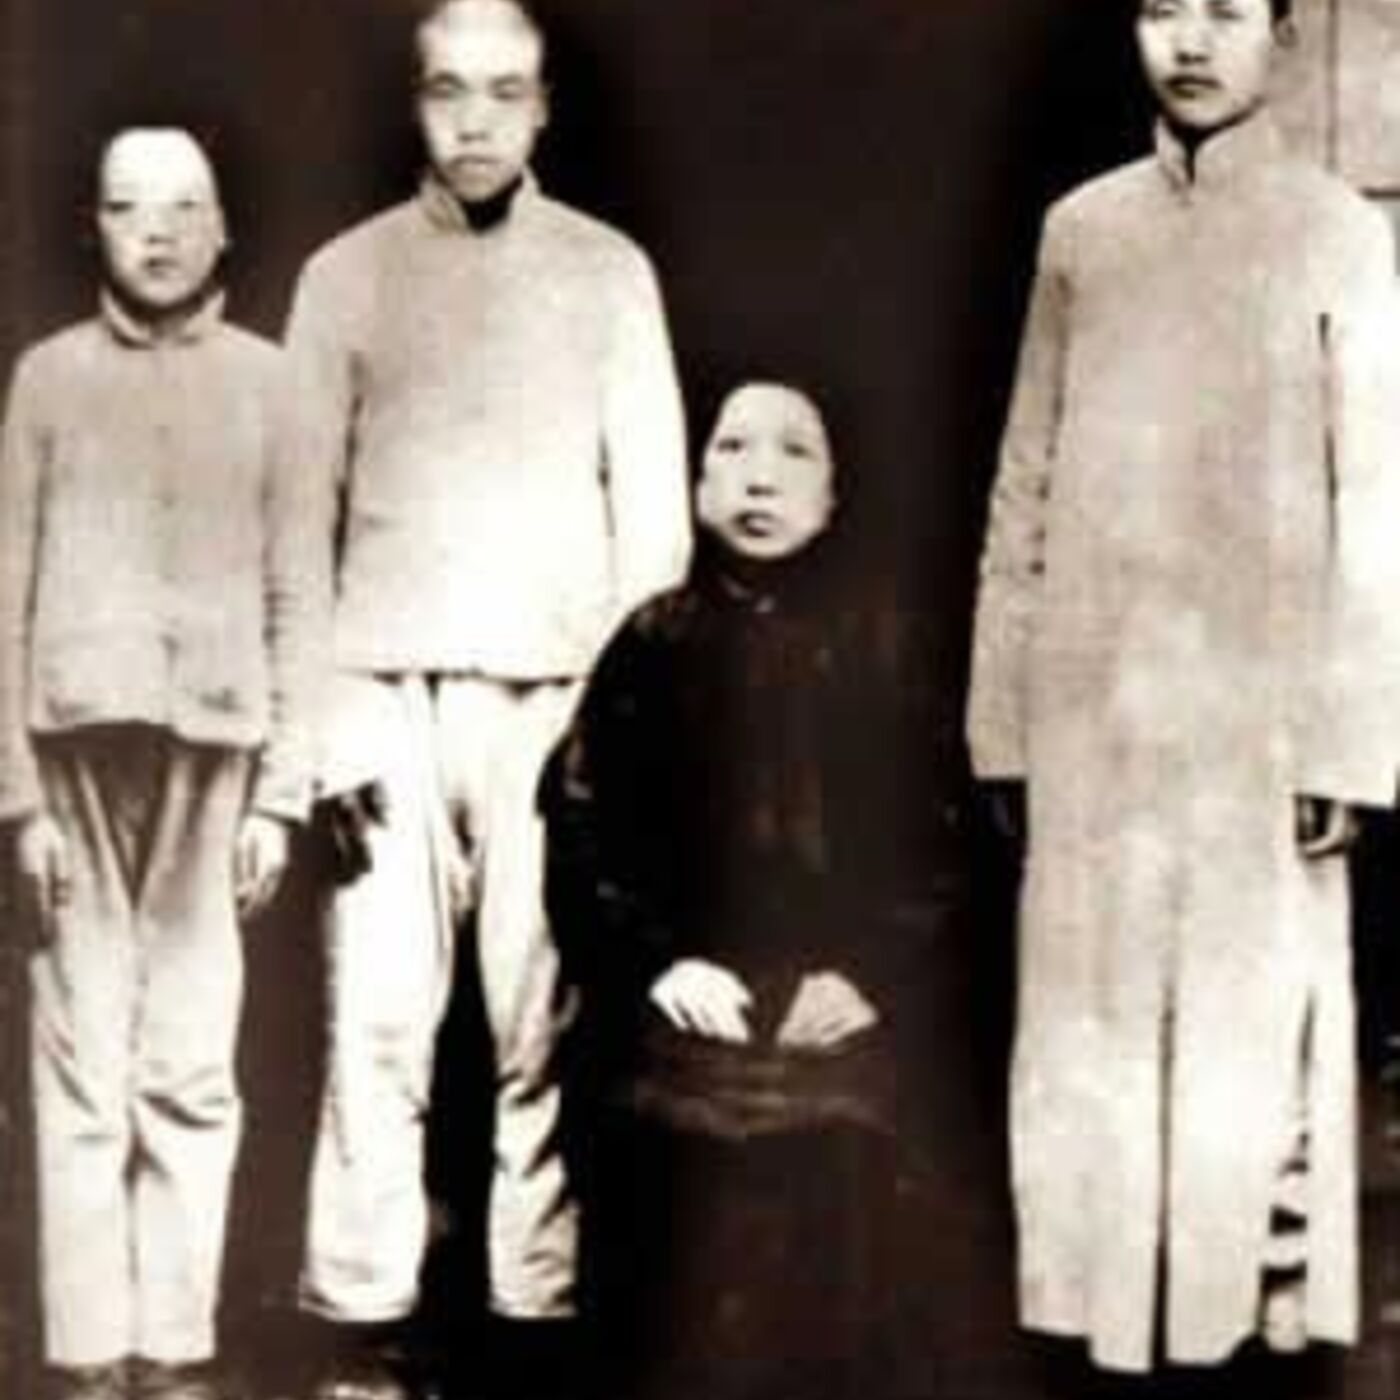 Mao's Anarchist Years (The Young Mao Zedong Part Two)